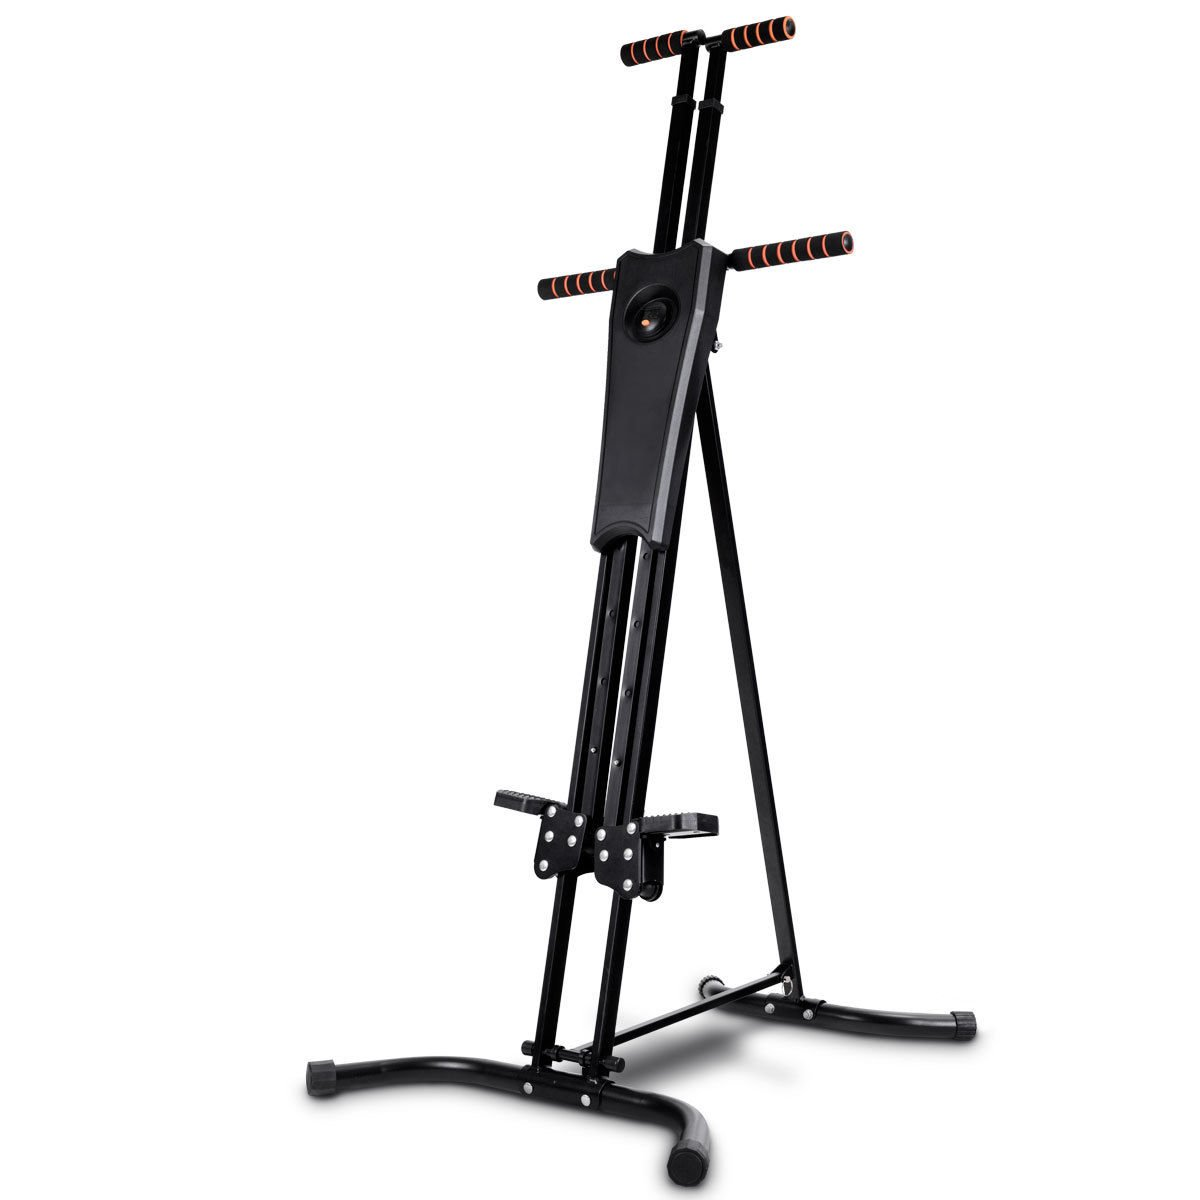 Goplus Vertical Climber Folding Stepper Climbing Exercise Machine w/Adjustable Height LCD Display Cardio Climbing System Home Gym